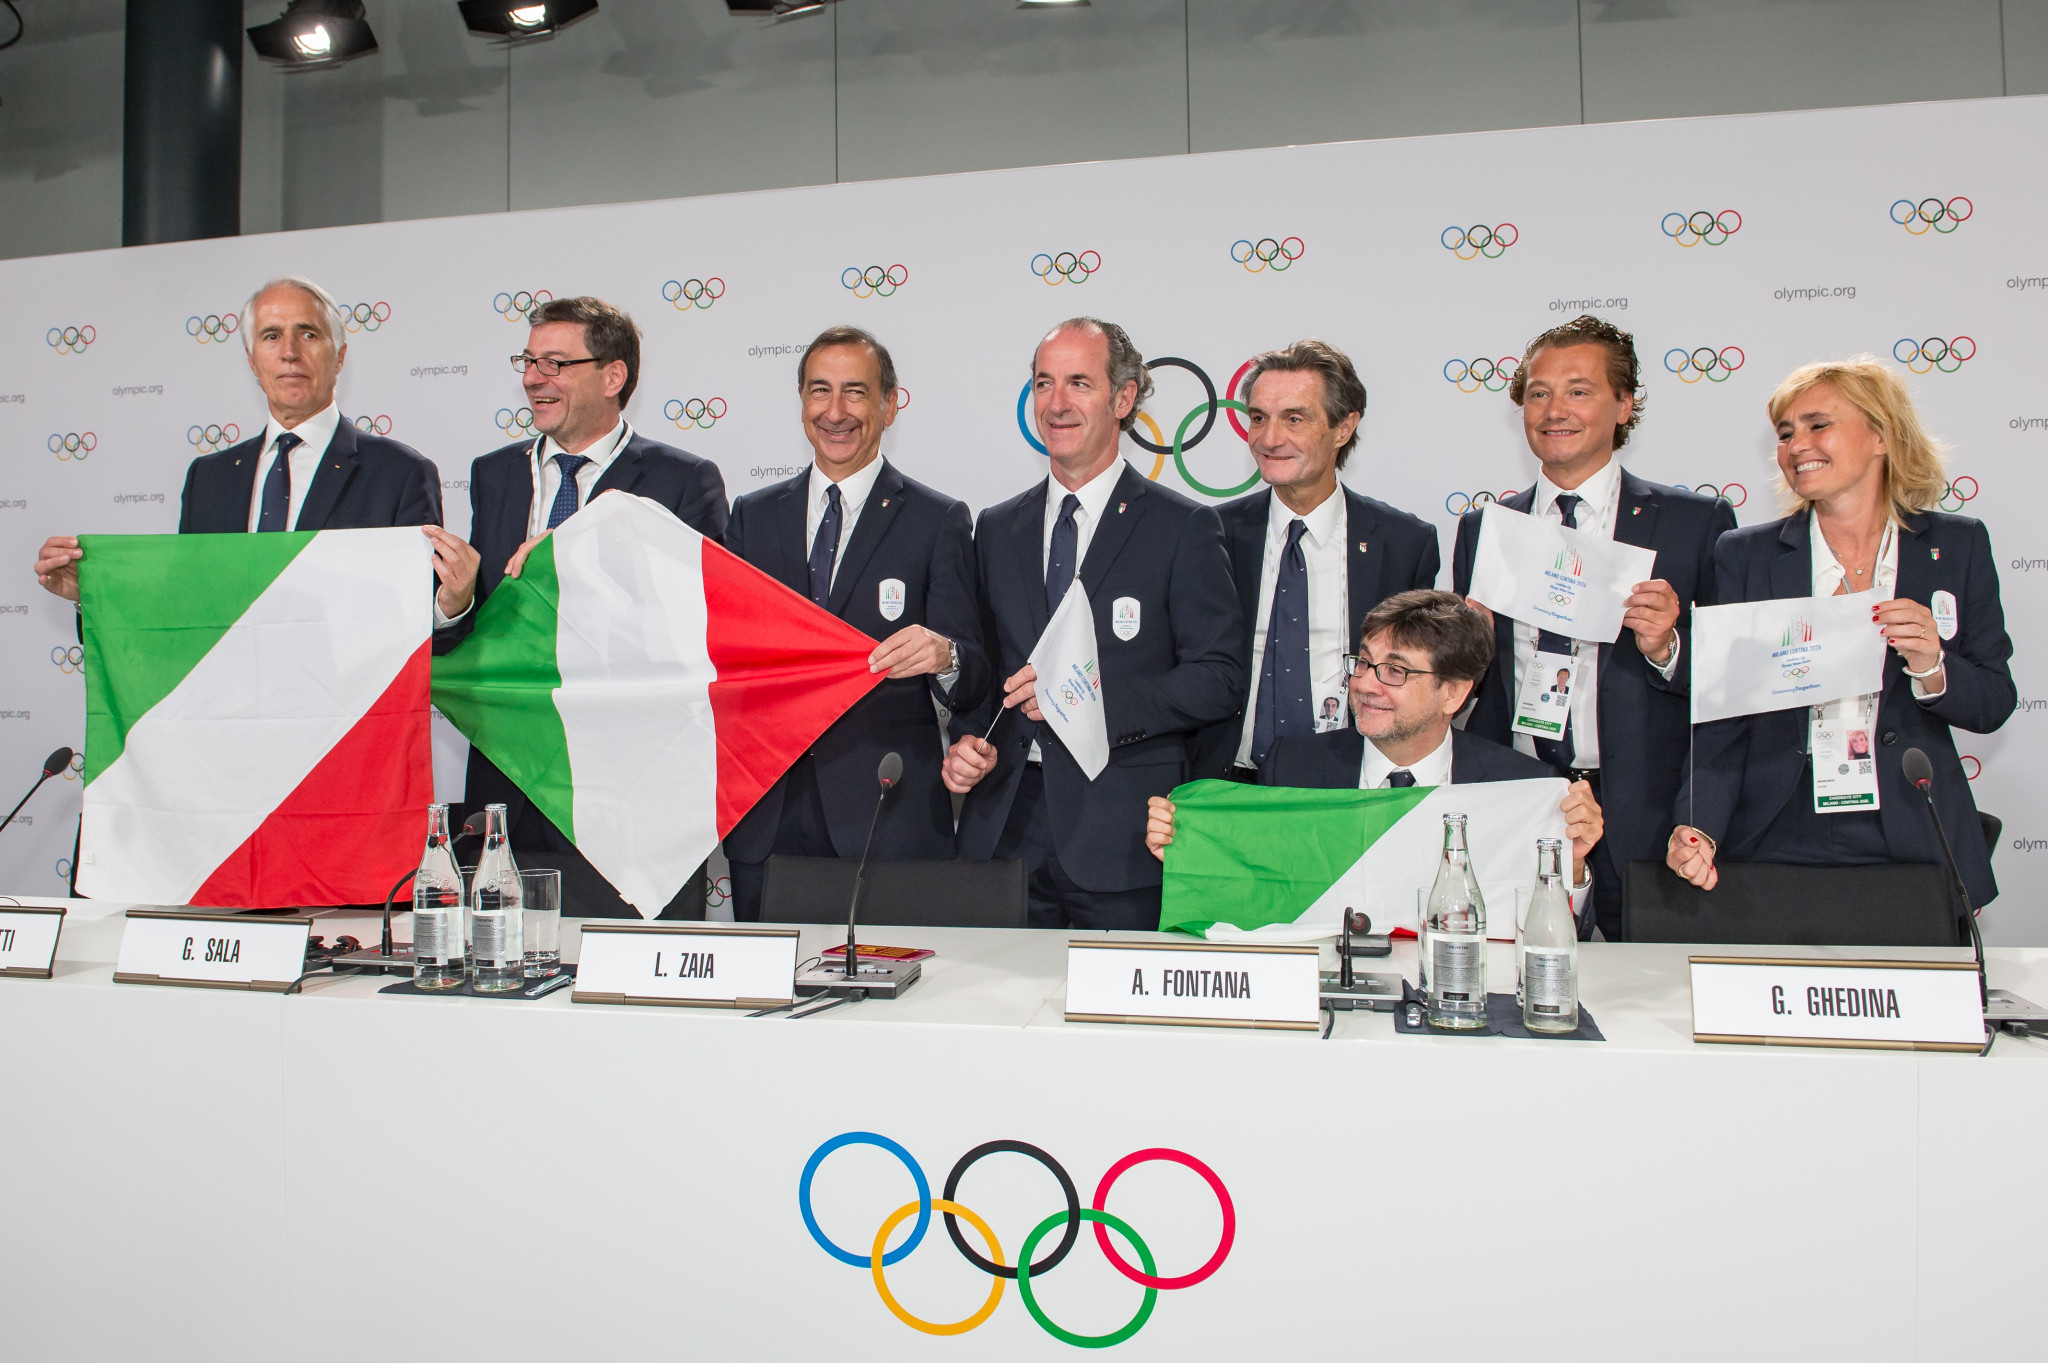 CONI to hand out awards to young people focusing on Milan Cortina 2026 Olympics